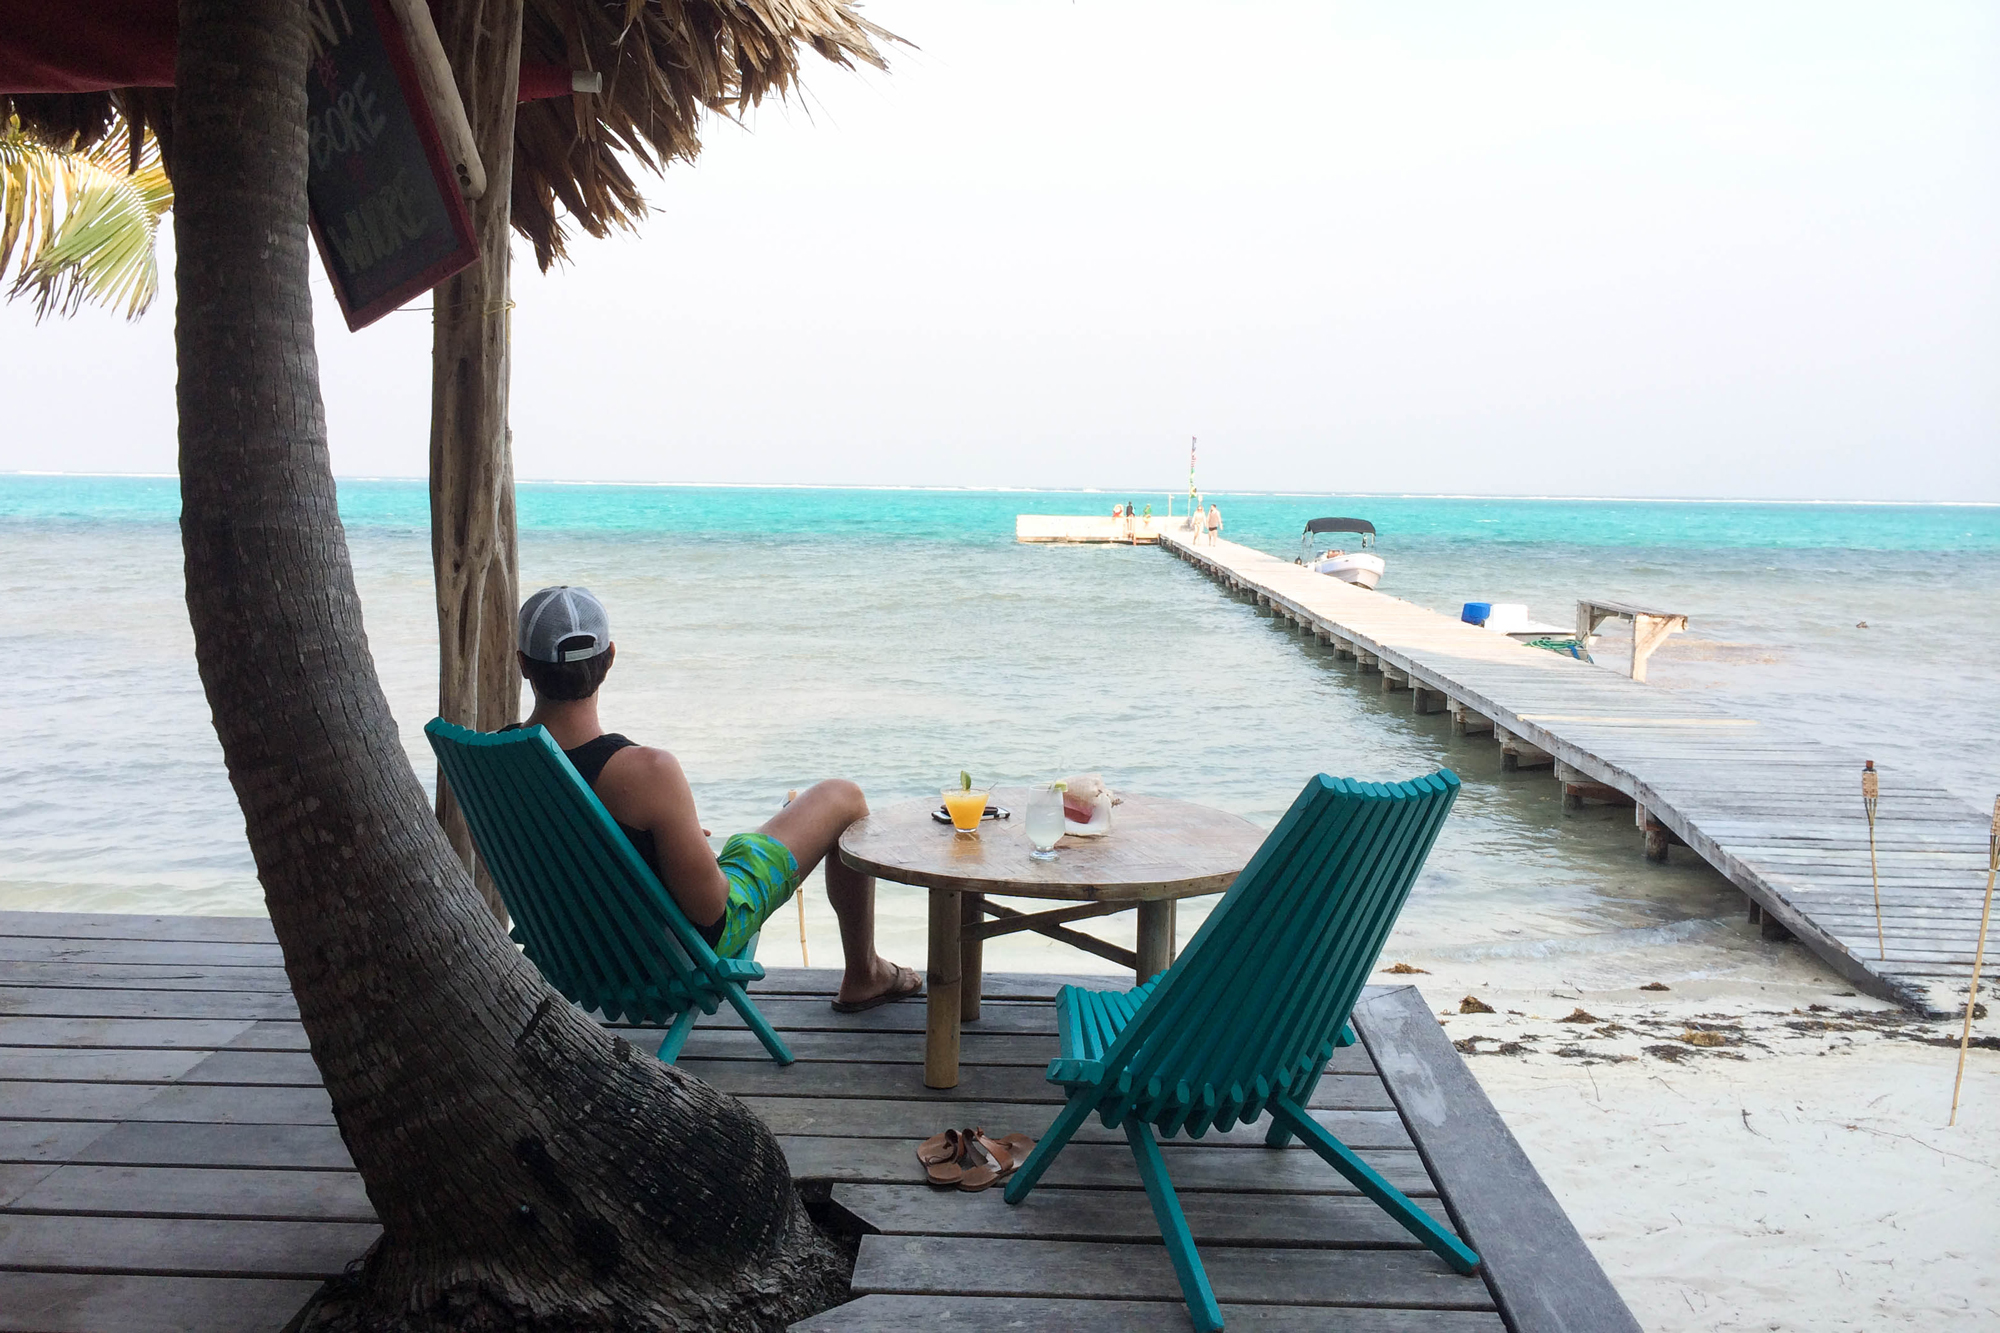 Above: The laid back and rum-inspired Rojo Beach Bar, also a must-stop on Ambergris Caye.